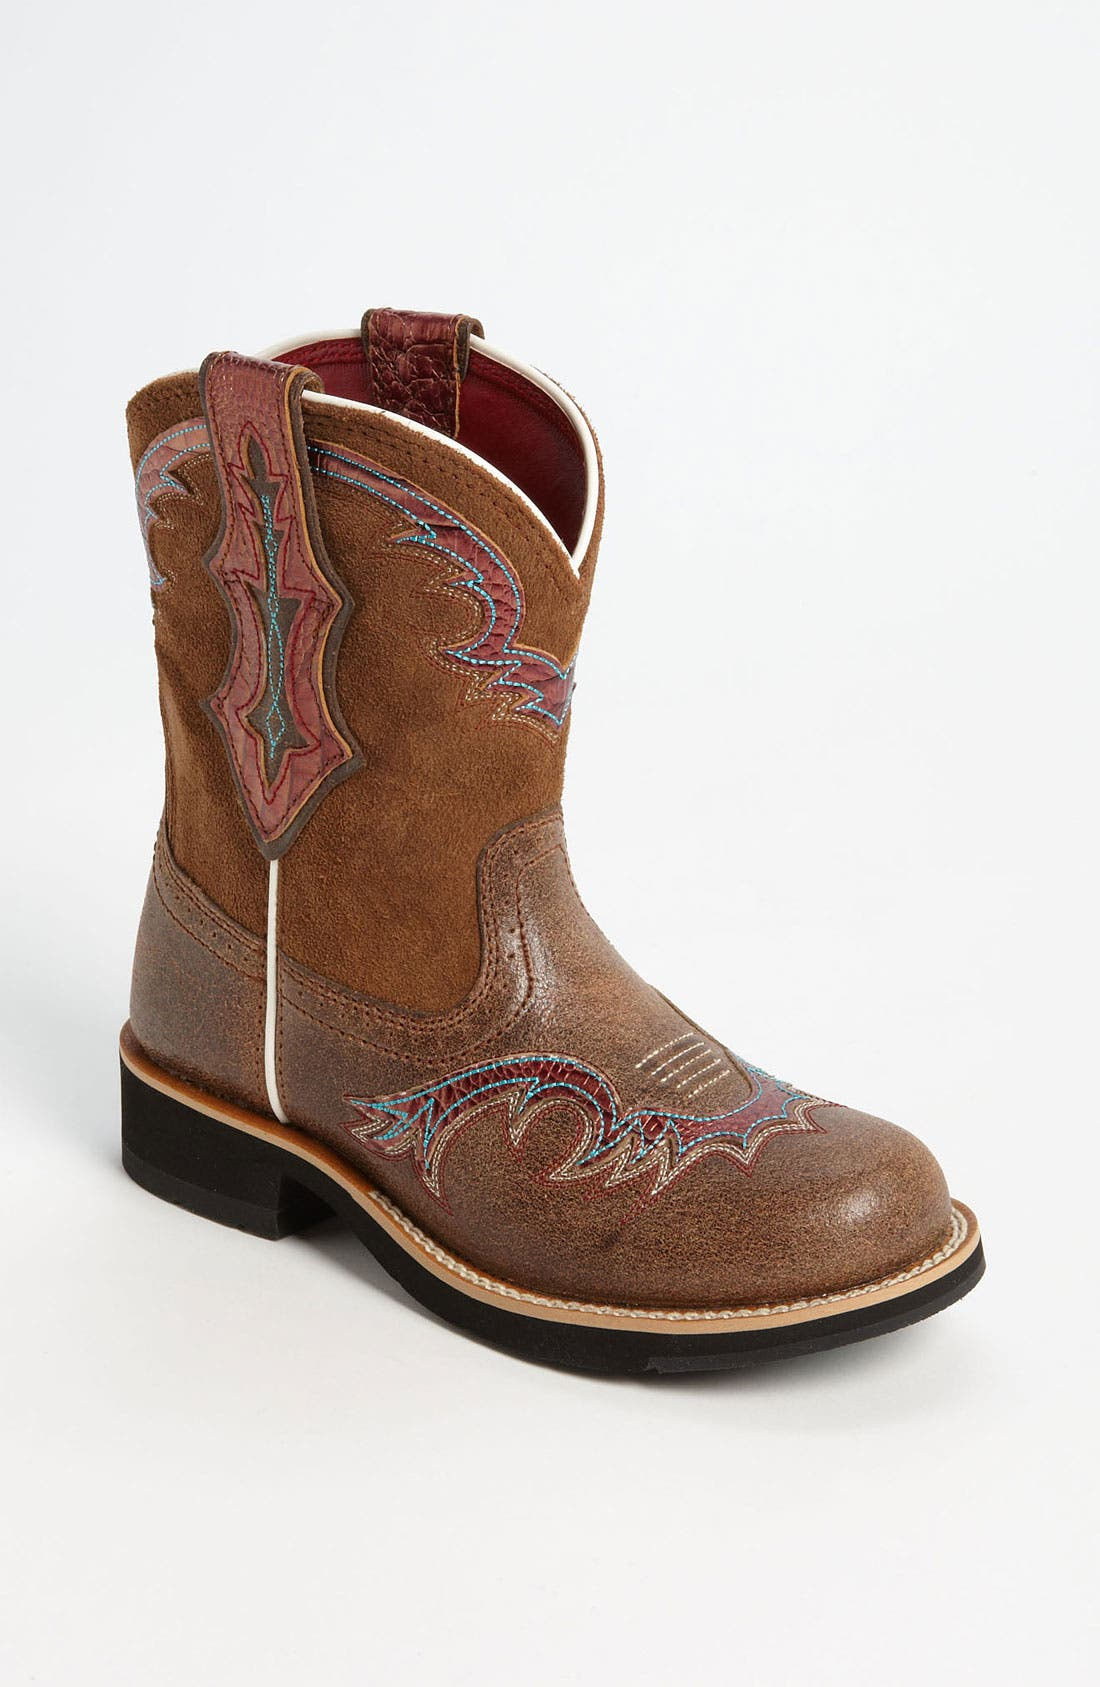 Alternate Image 1 Selected - Ariat 'Showbaby U-Turn' Boot (Online Only)